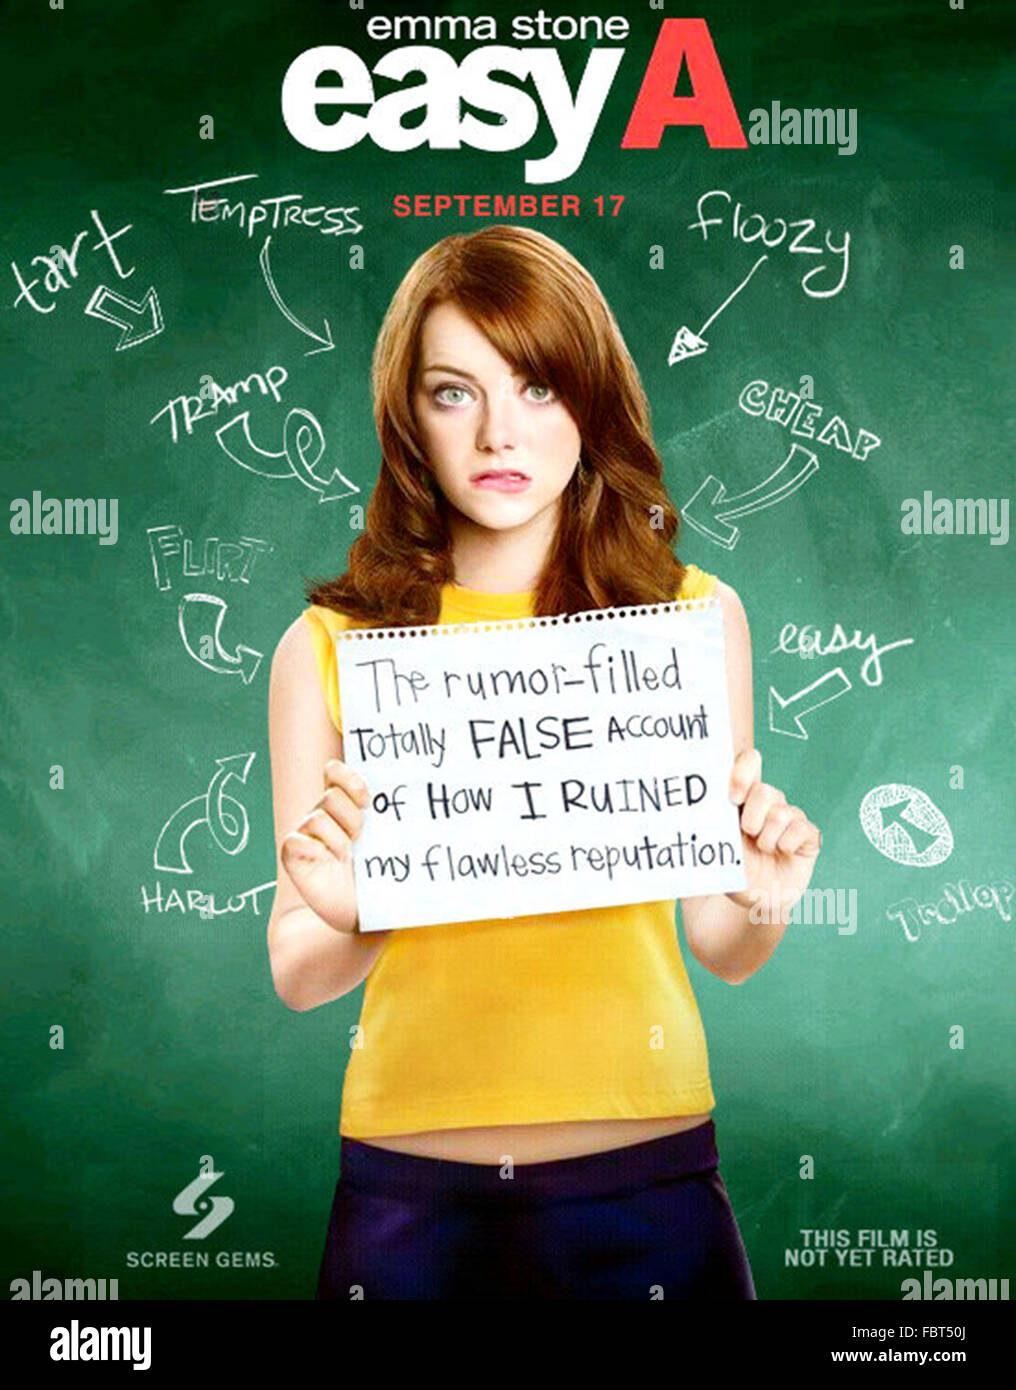 EASY A (2010)  EMMA STONE  WILL GLUCK (DIR)  MOVIESTORE COLLECTION LTD - Stock Image